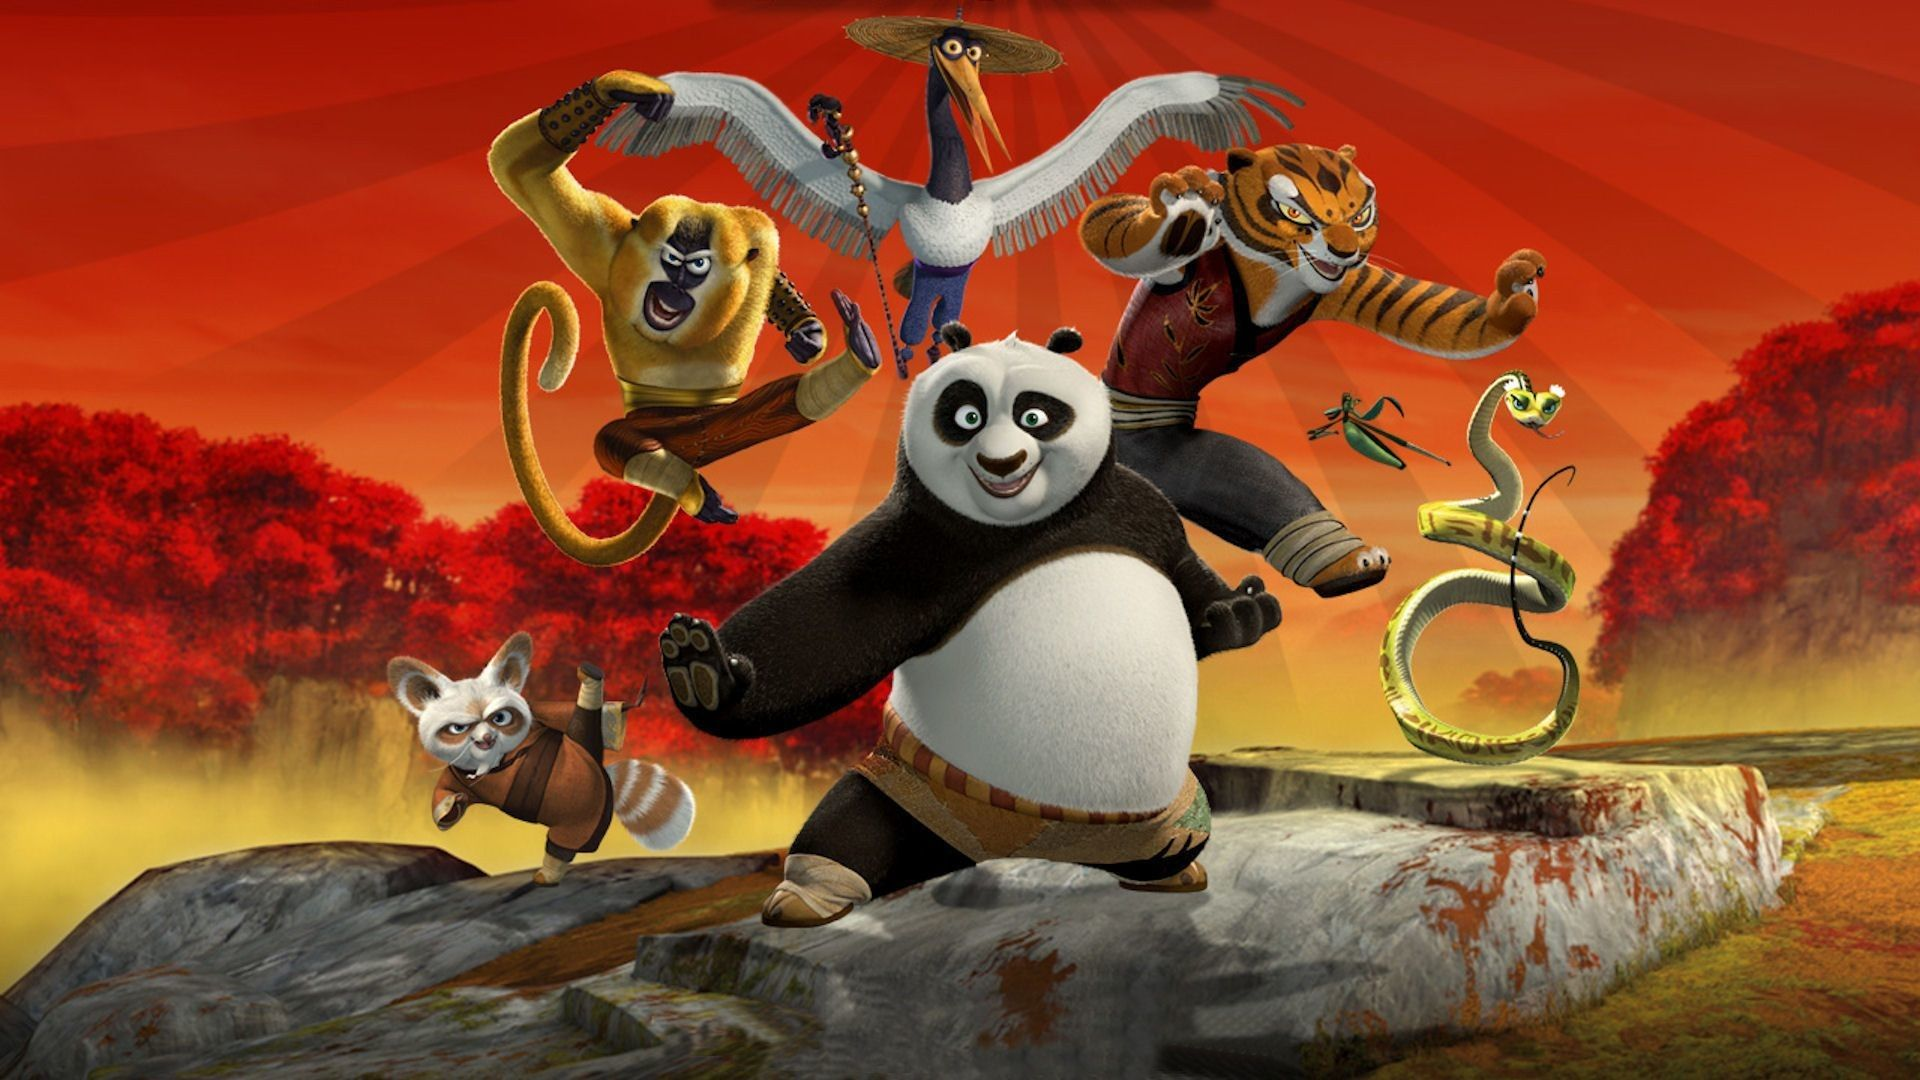 Kung Fu Panda 3 Collection See All Wallpapers Wallpapers Background Movies Kung Fu Panda Kung Fu Panda 3 Kung Fu